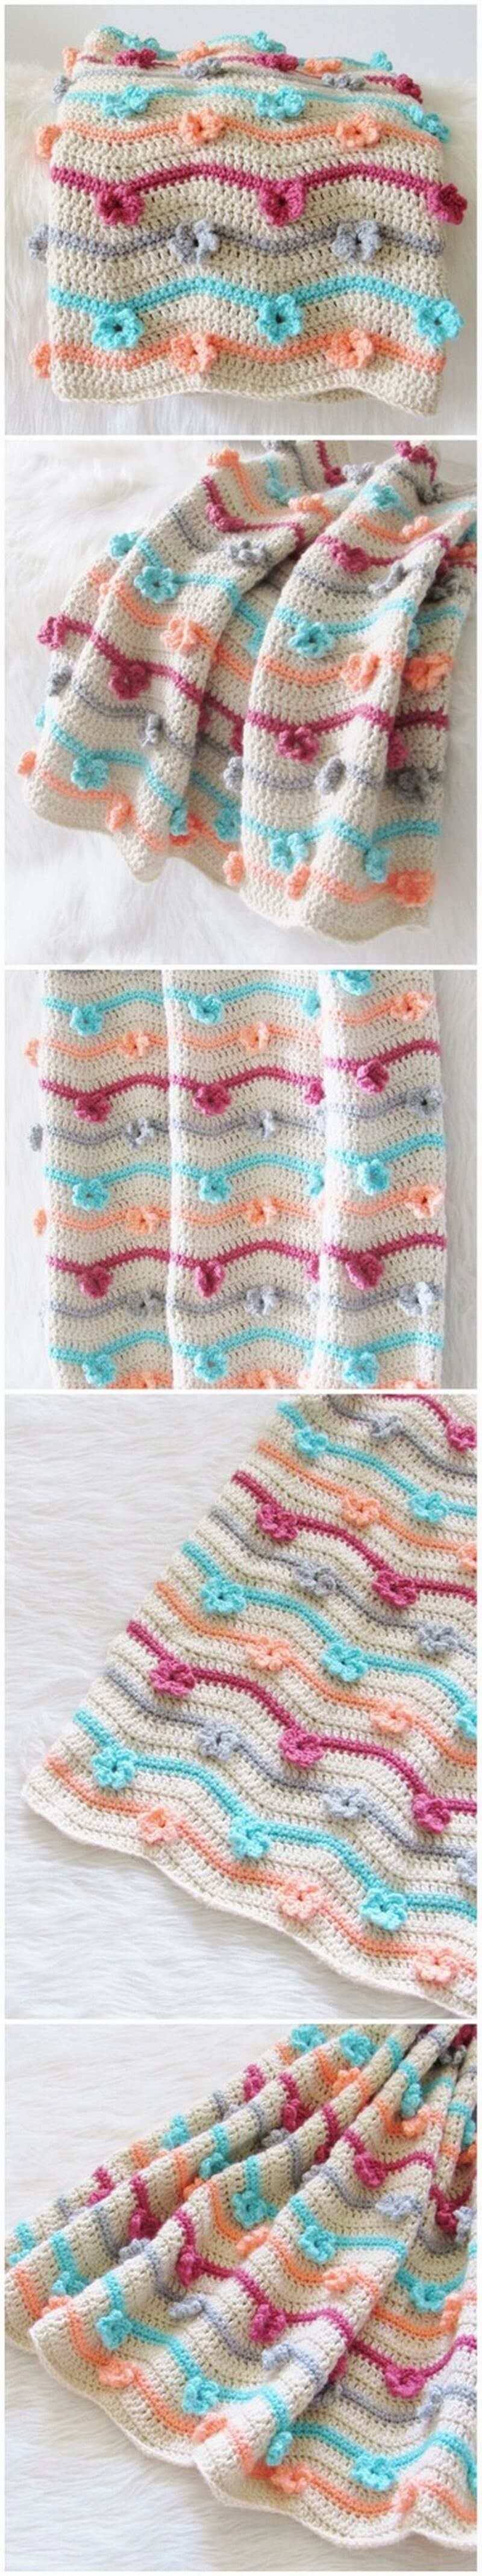 Easy Crochet Blanket Pattern (22)